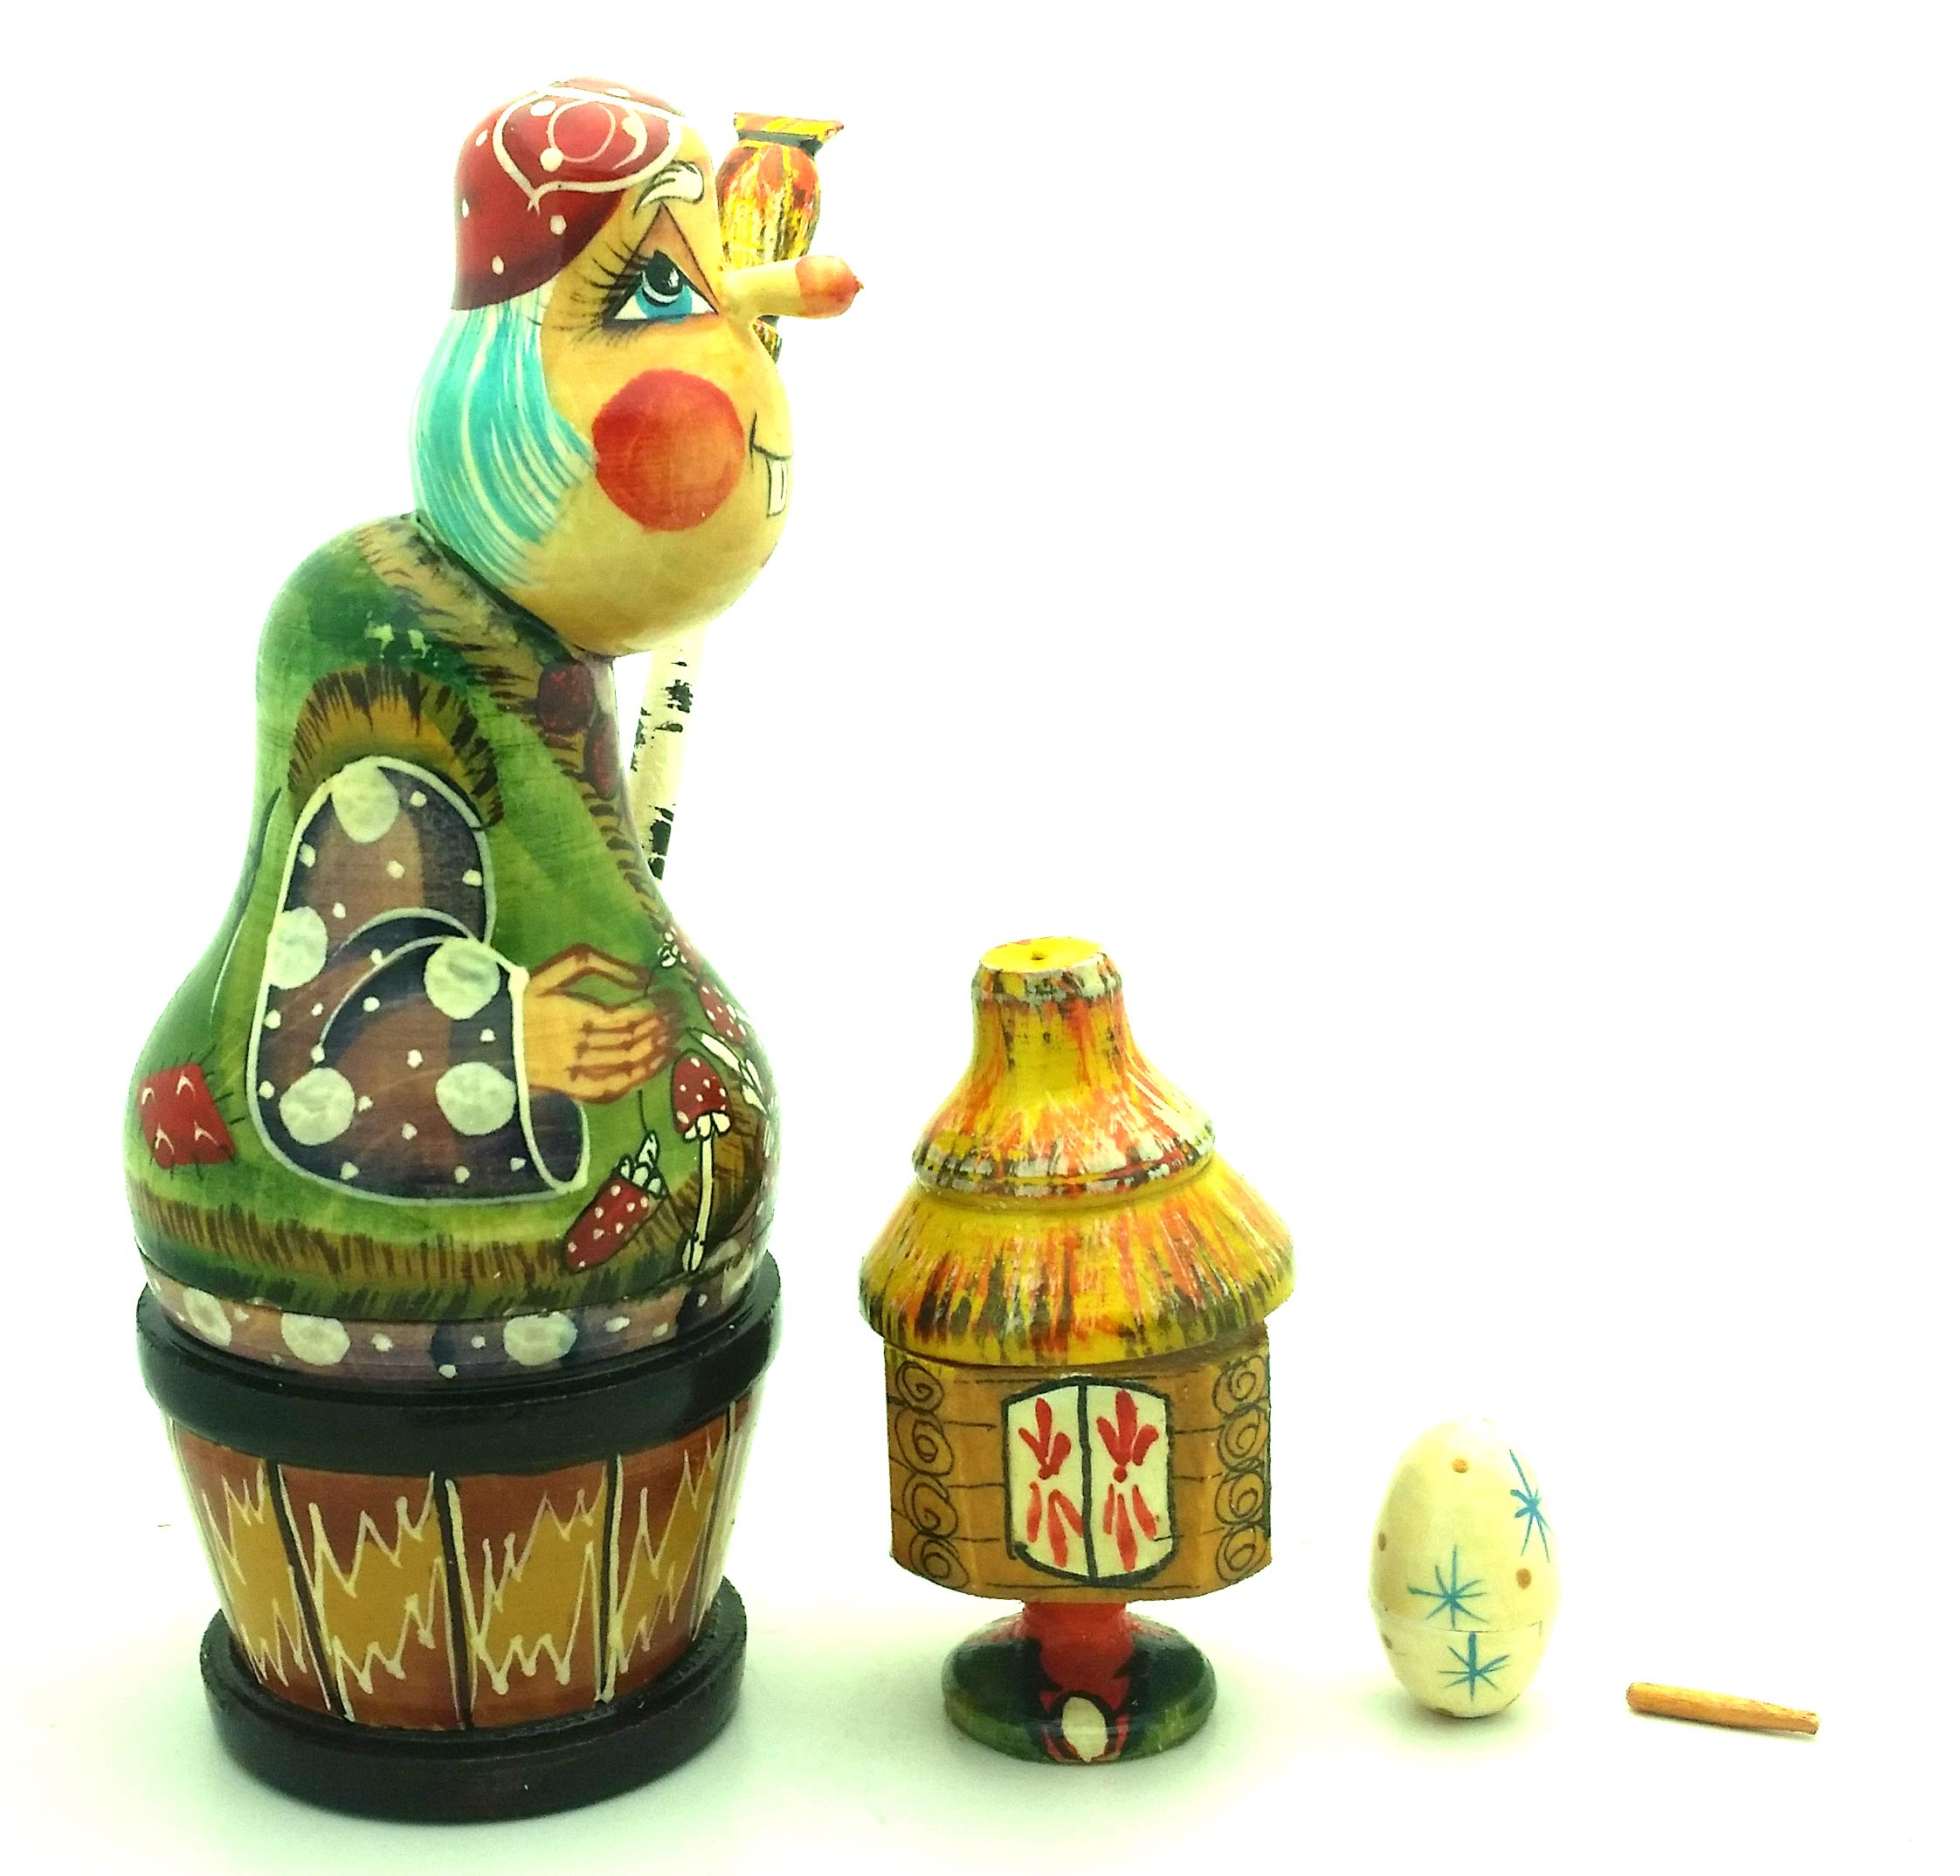 BABA YAGA Witch Russian Nesting 4 piece DOLL Set Hand Carved Hand Painted / Stacking Wooden Matryoshka Babushka doll by BuyRussianGifts (Image #3)